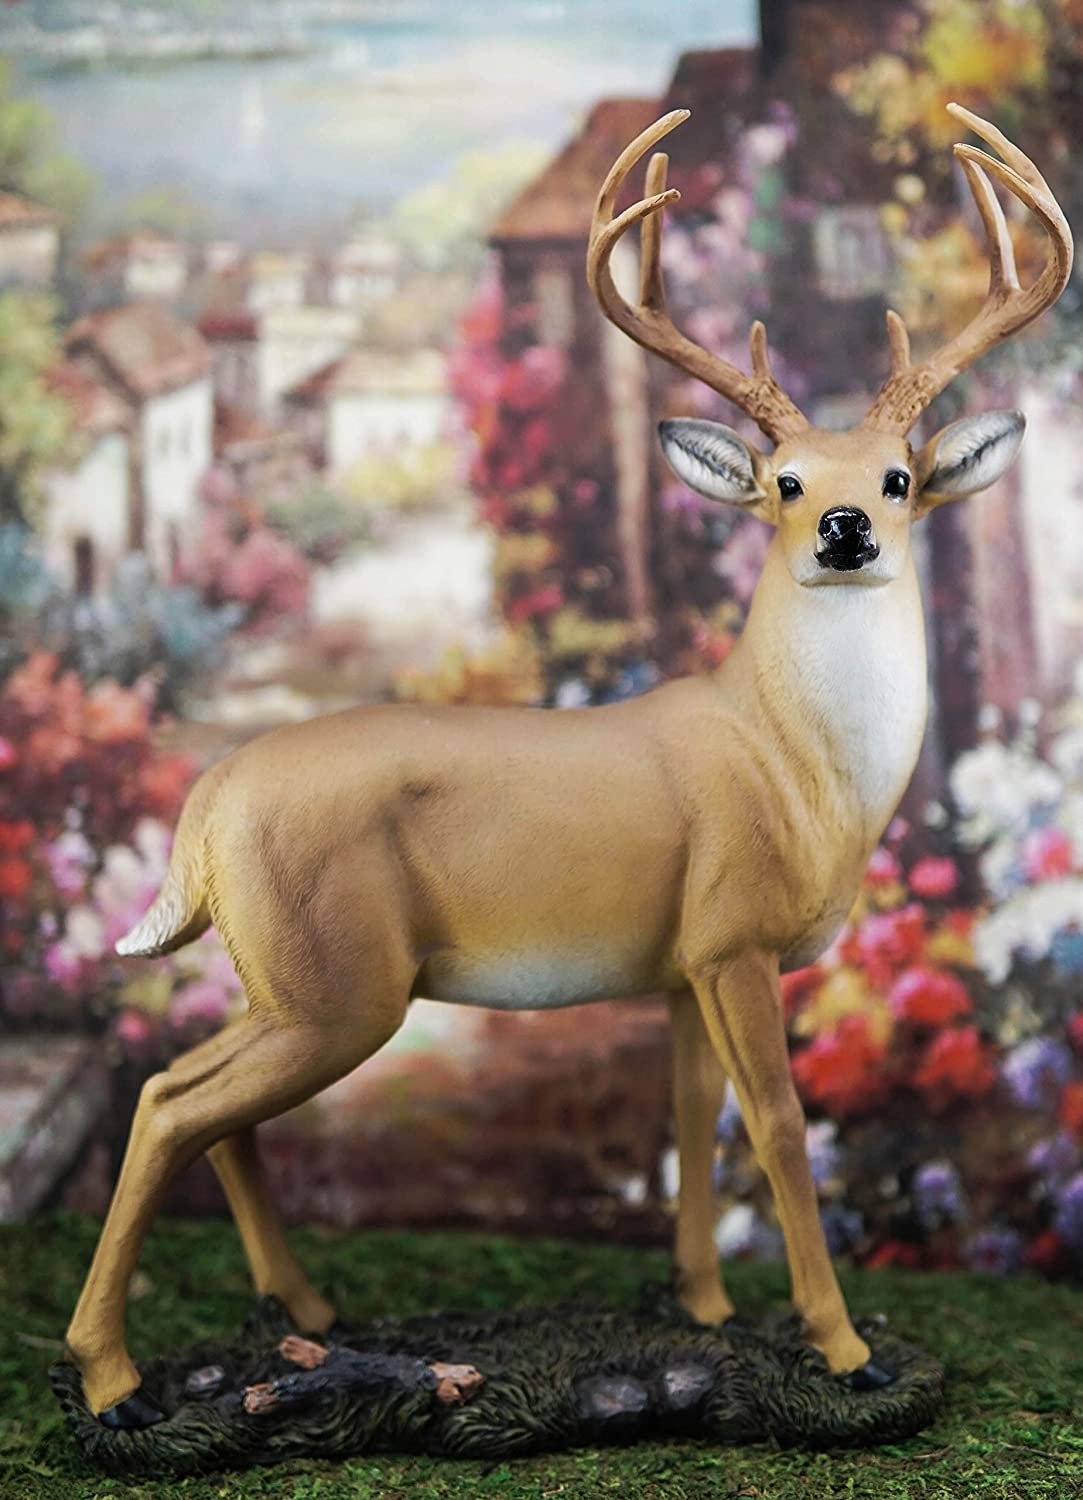 JHVYF Small Buck Statuary 12 Point Resin Deer Statue Garden Lying Sculptures Cabin Animal Figurines Lodge Art D/écor for Indoor Outdoor Home Or Office